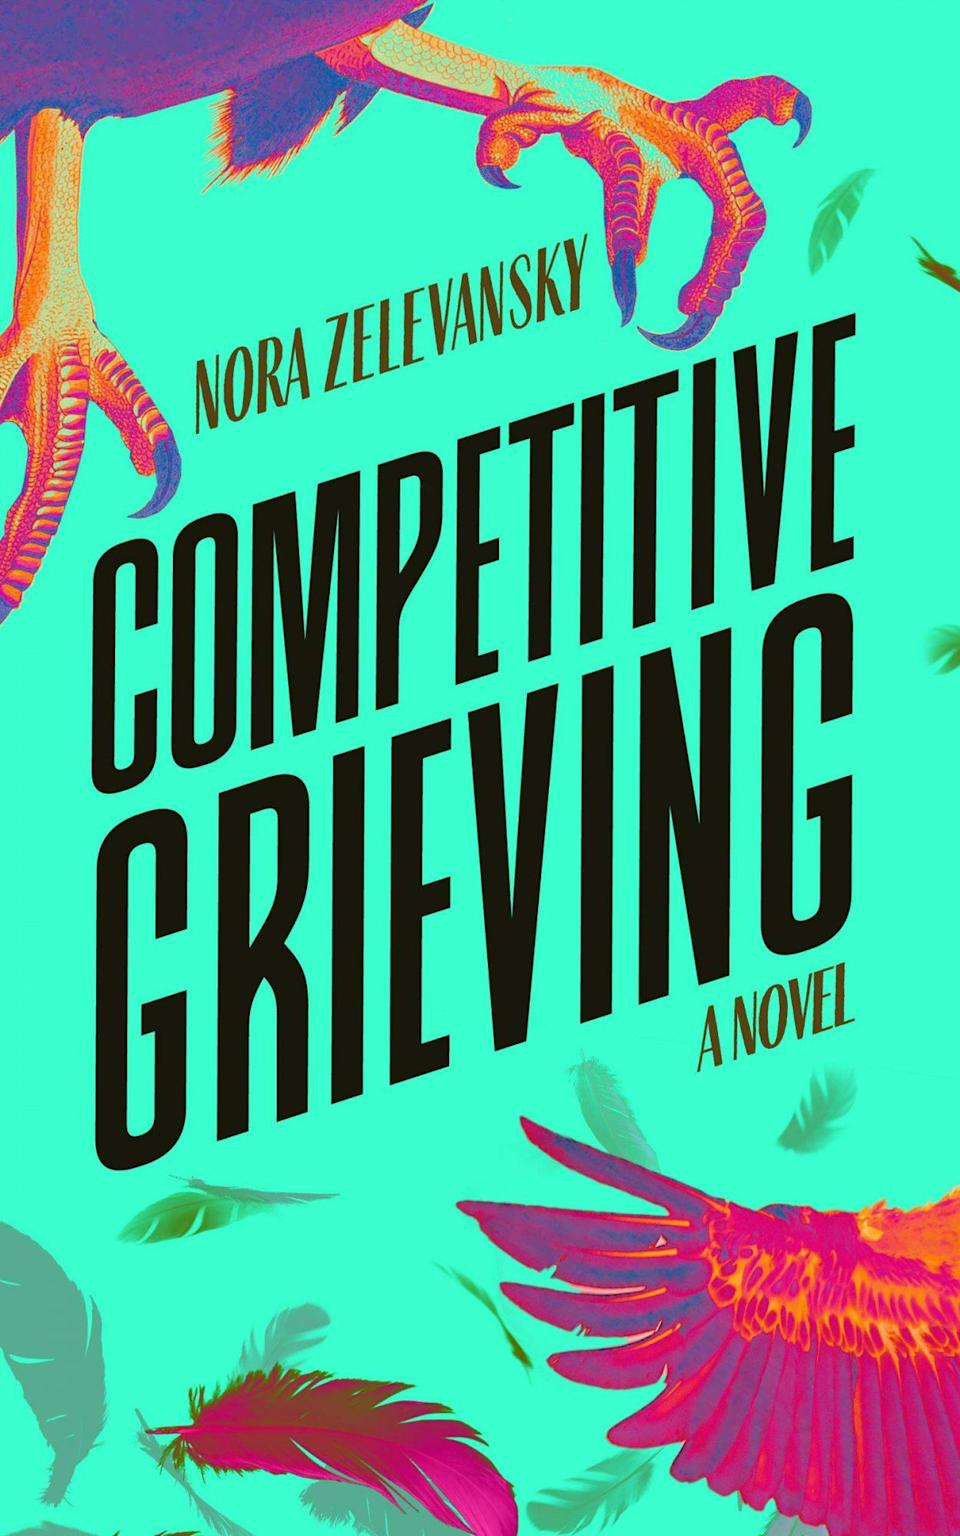 <p>A dark comedy about a woman dealing with the sudden loss of her closest friend, who just happened to be a rising television star. (May 11)</p>